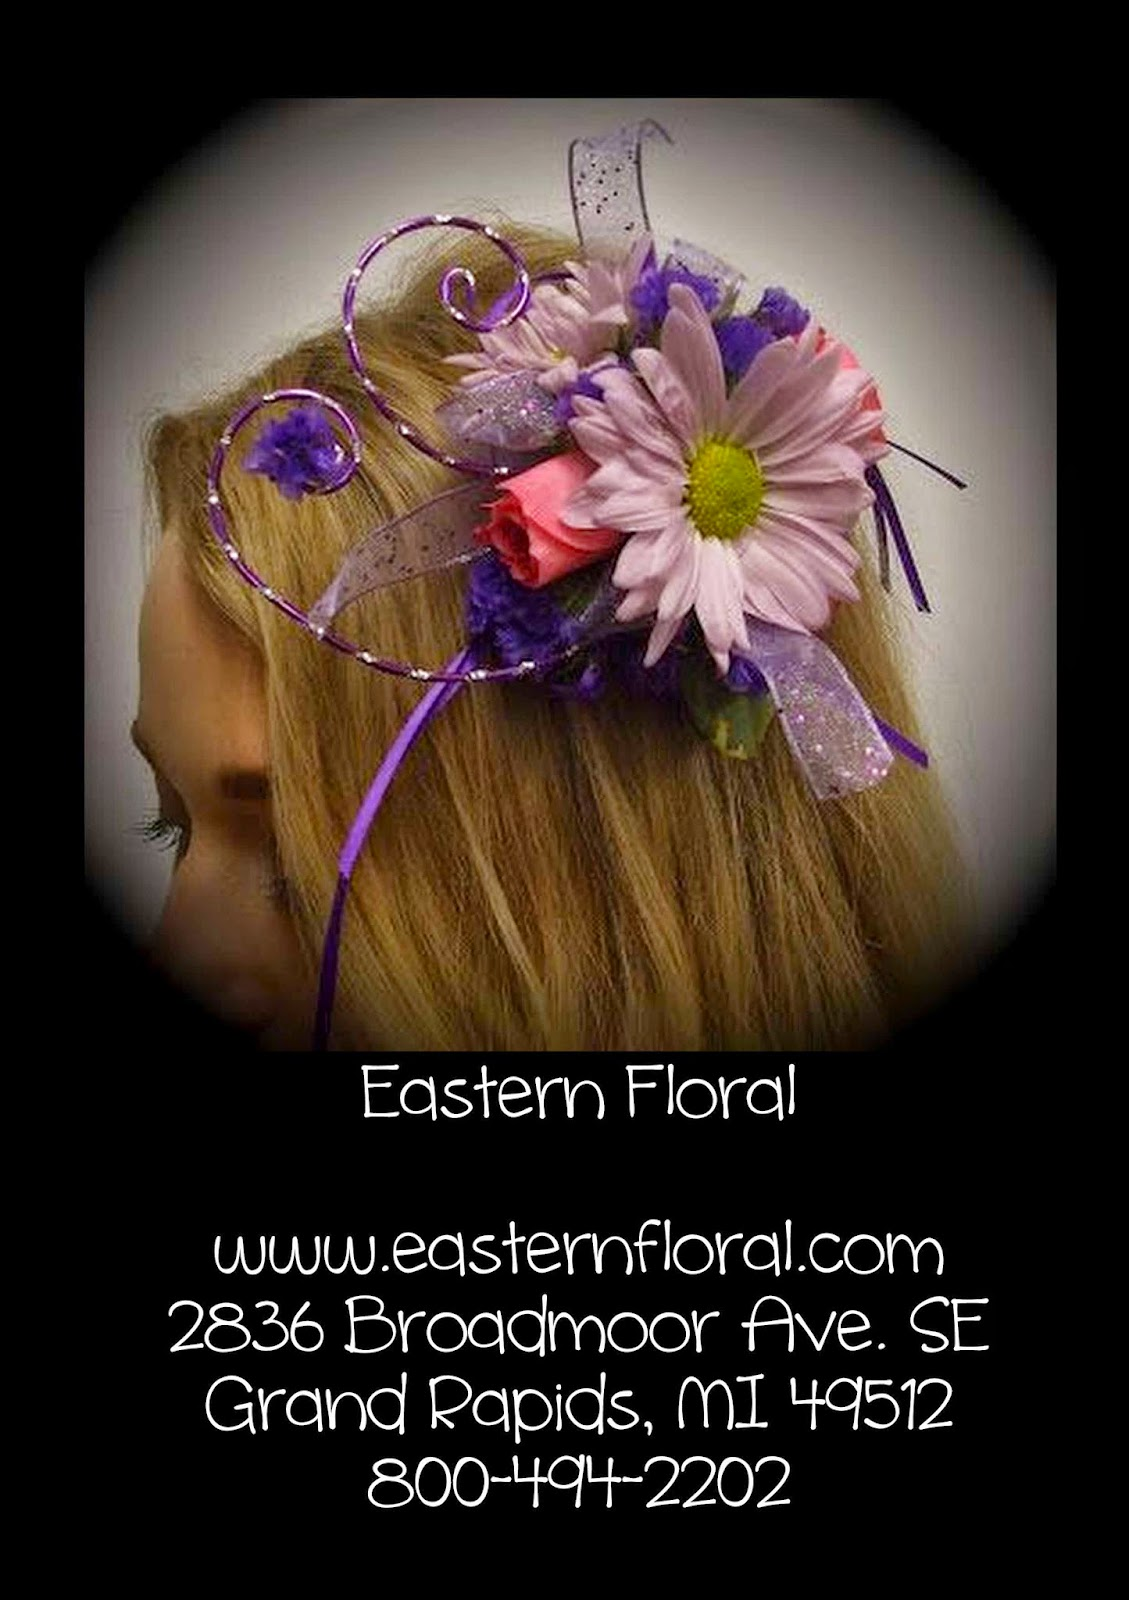 http://www.easternfloral.com/